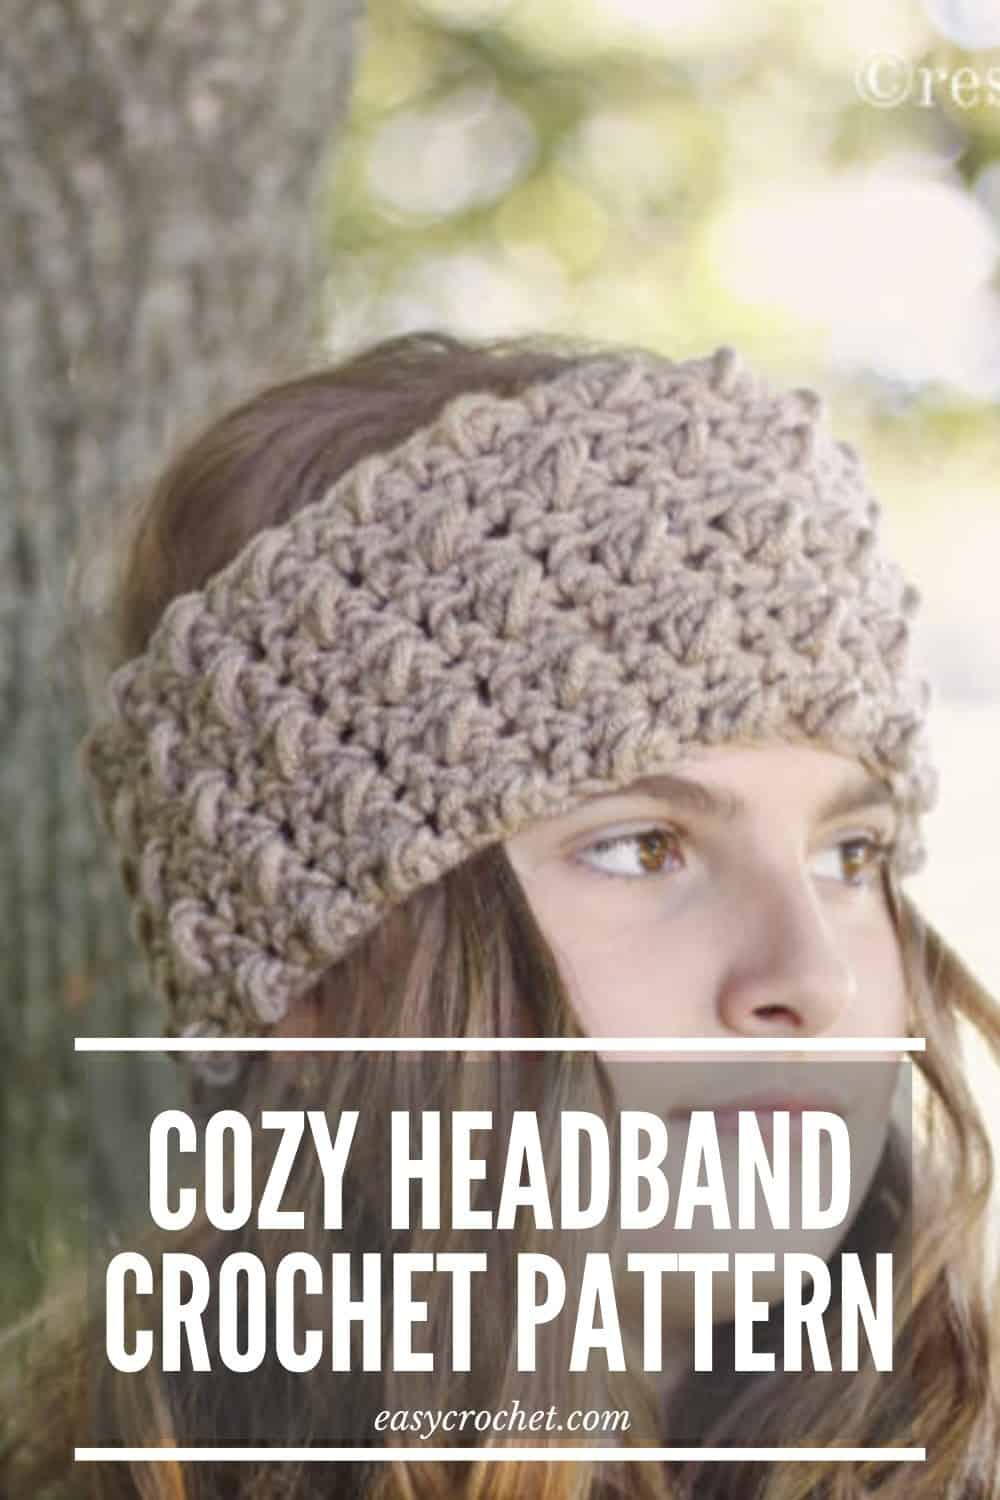 Cozy Crochet Headband Pattern via @easycrochetcom